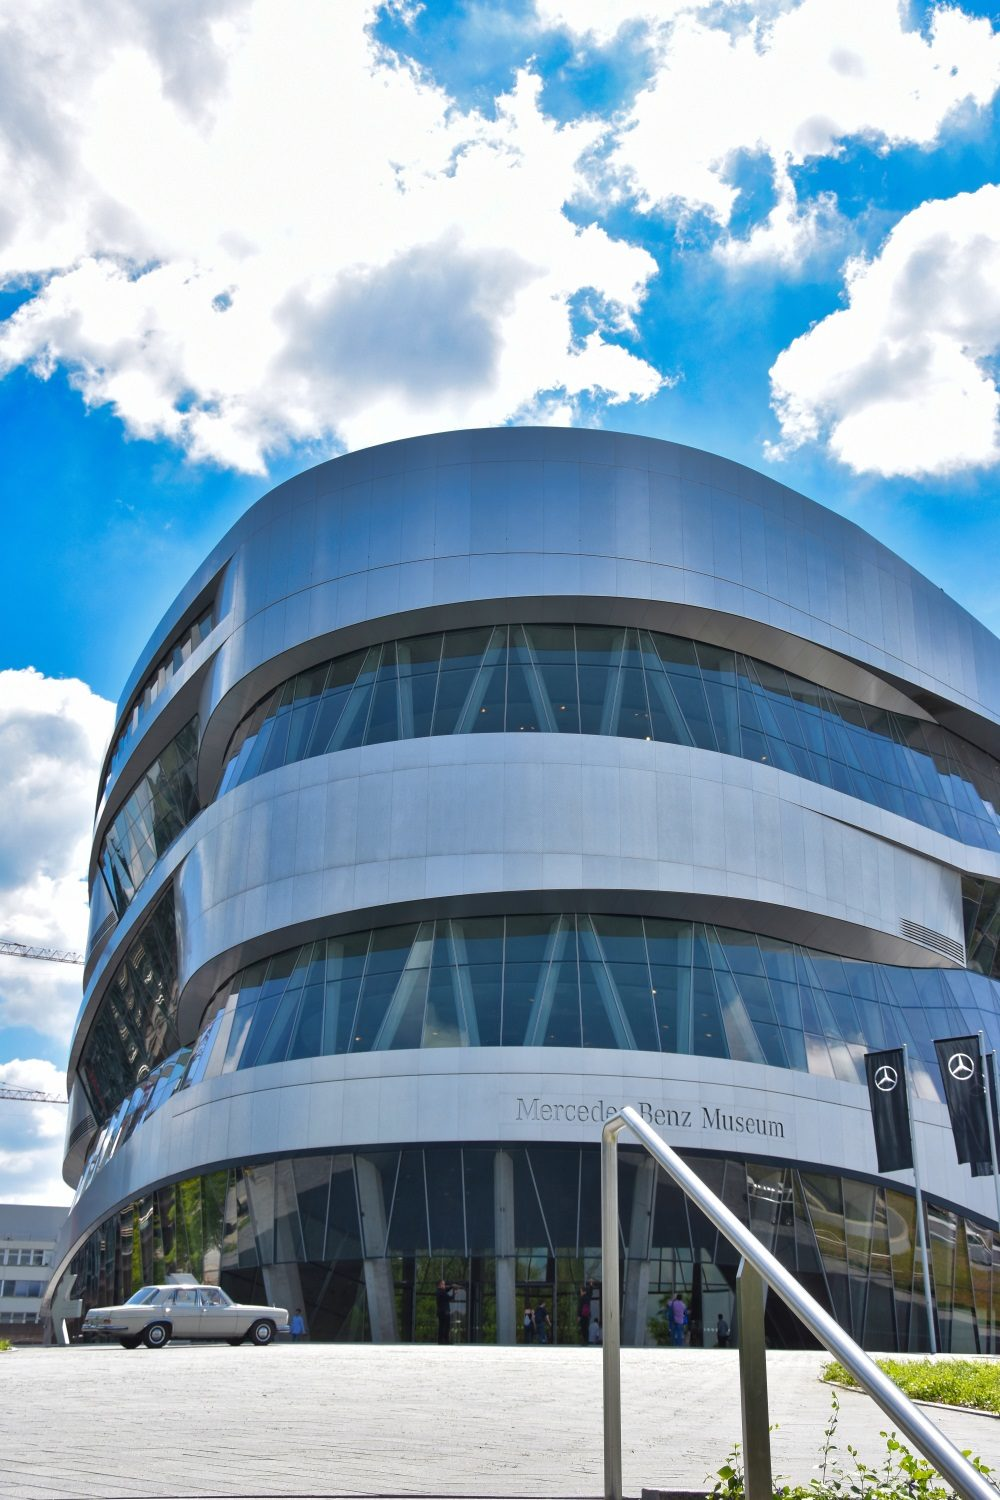 Mercedes-Benz Museum in Stuttgart